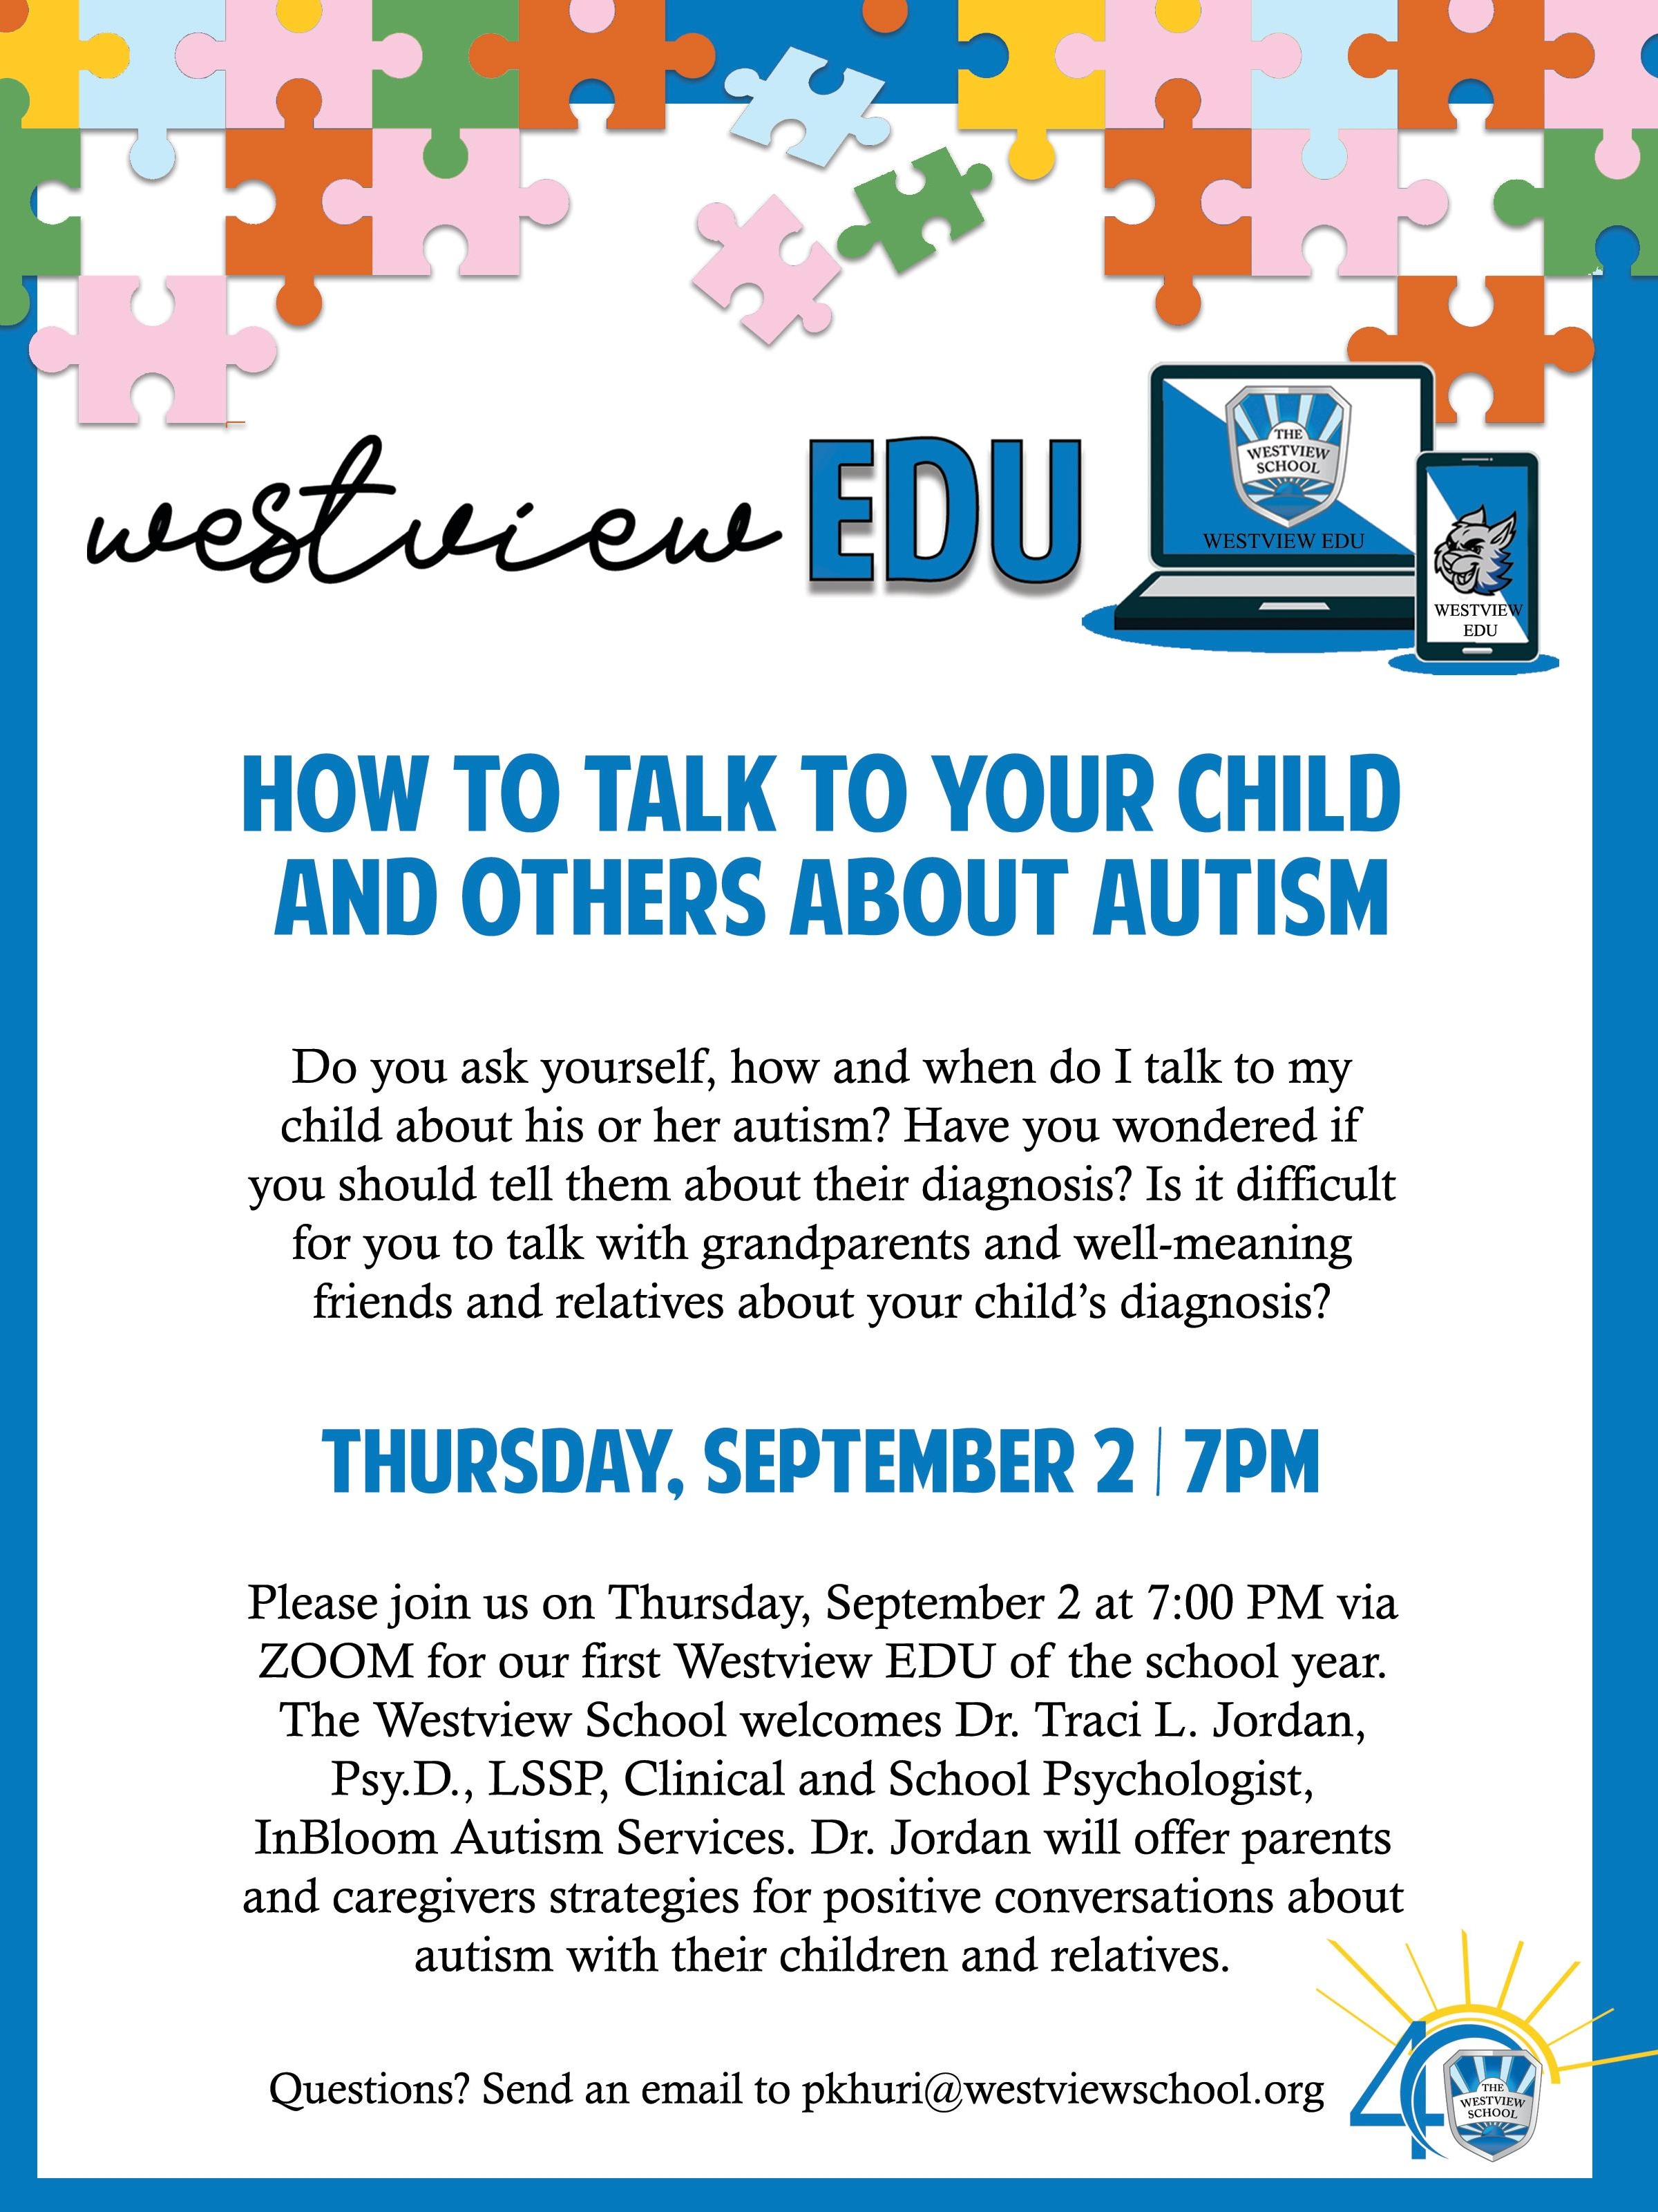 Westview EDU: How to Talk to Your Child and Others About Autism